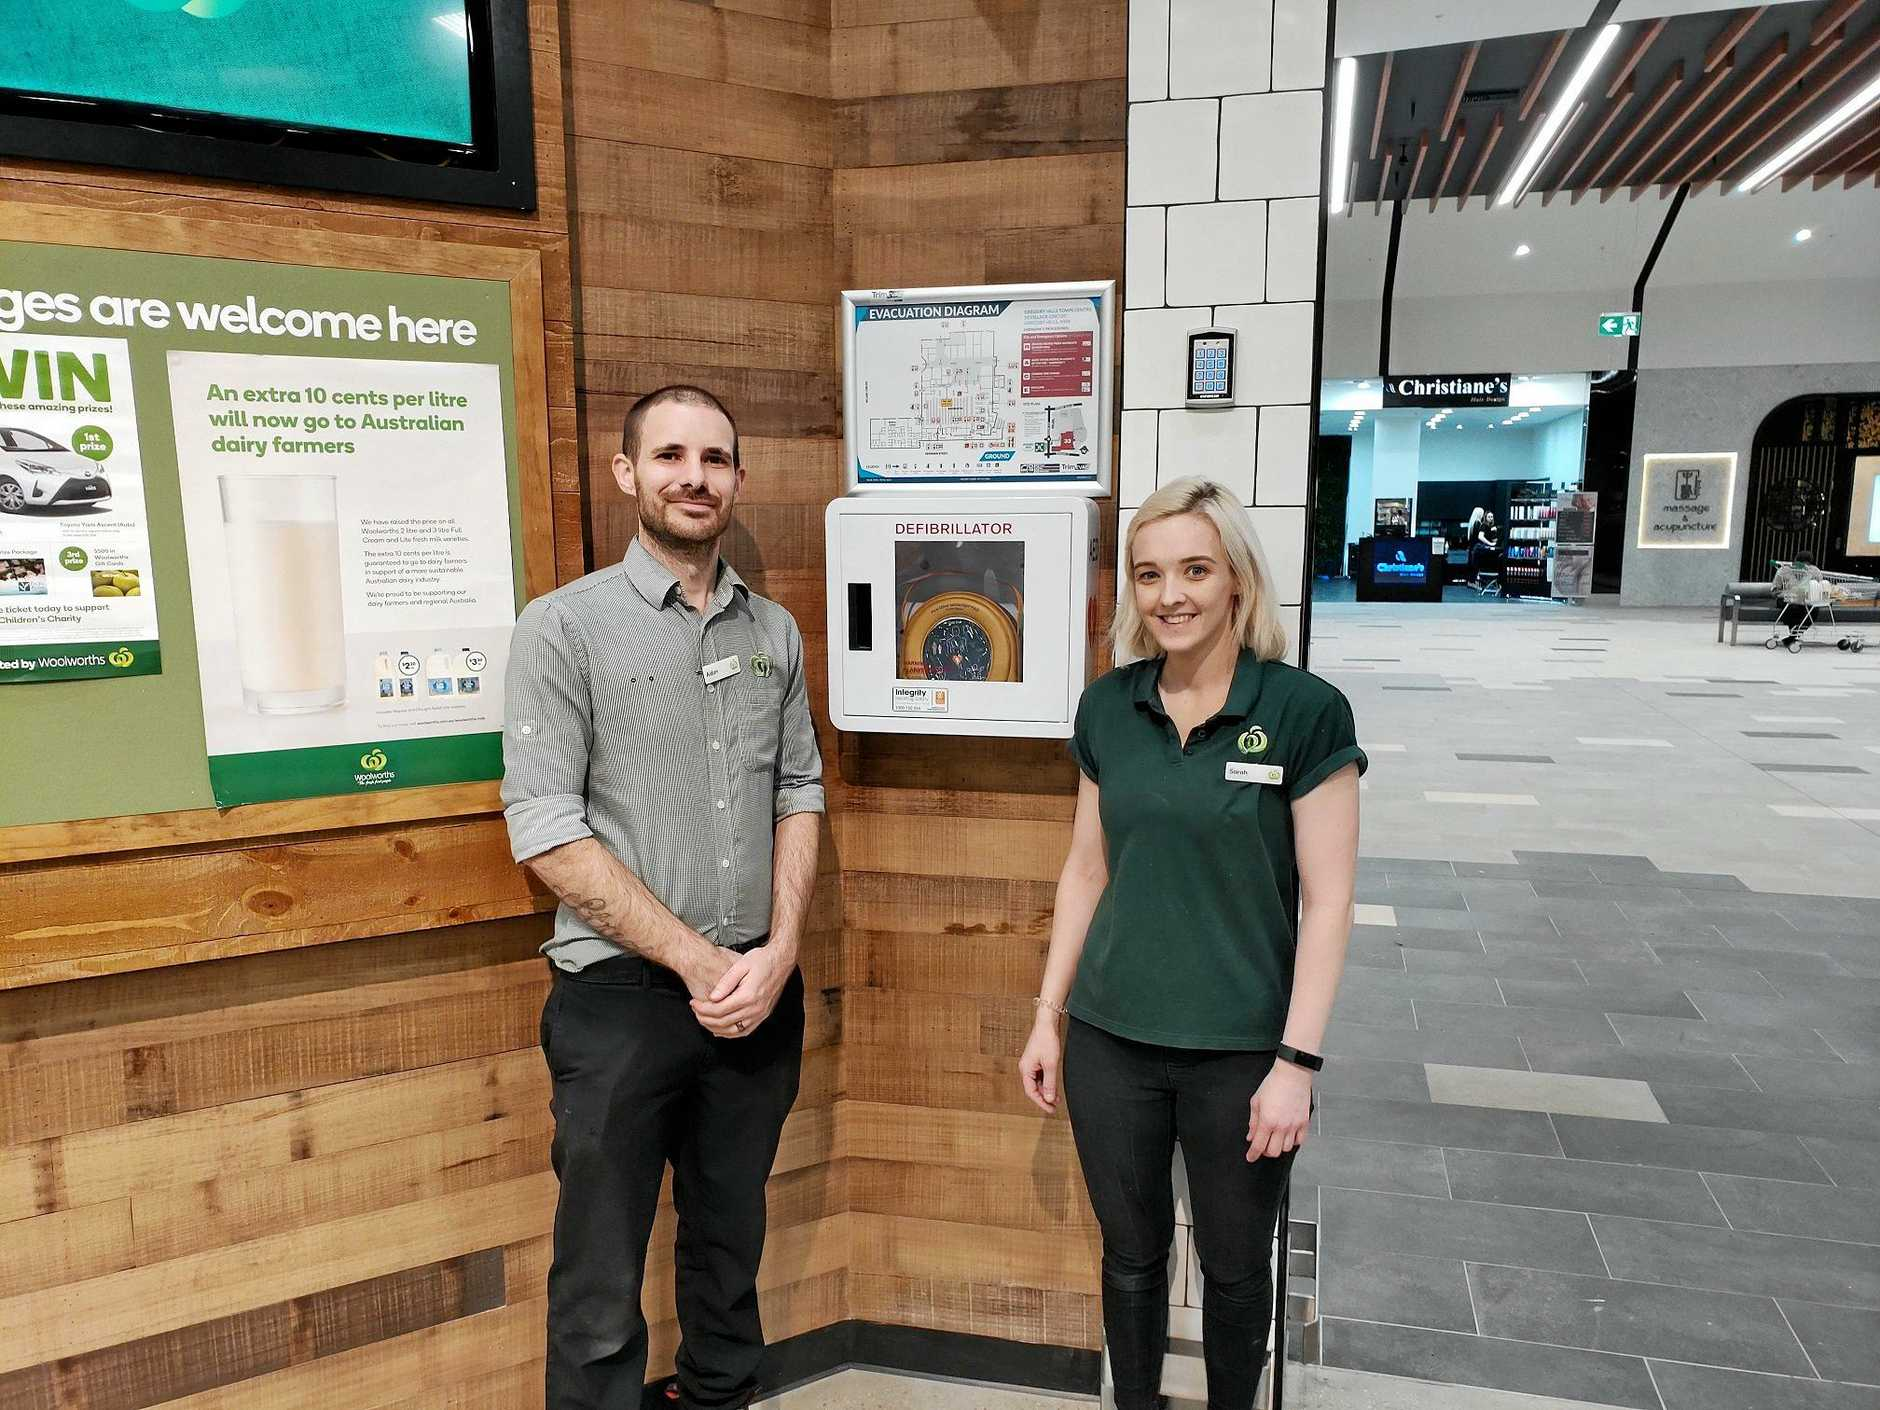 Woolworths has pledged to roll out defibrillator machines in stores across the country.